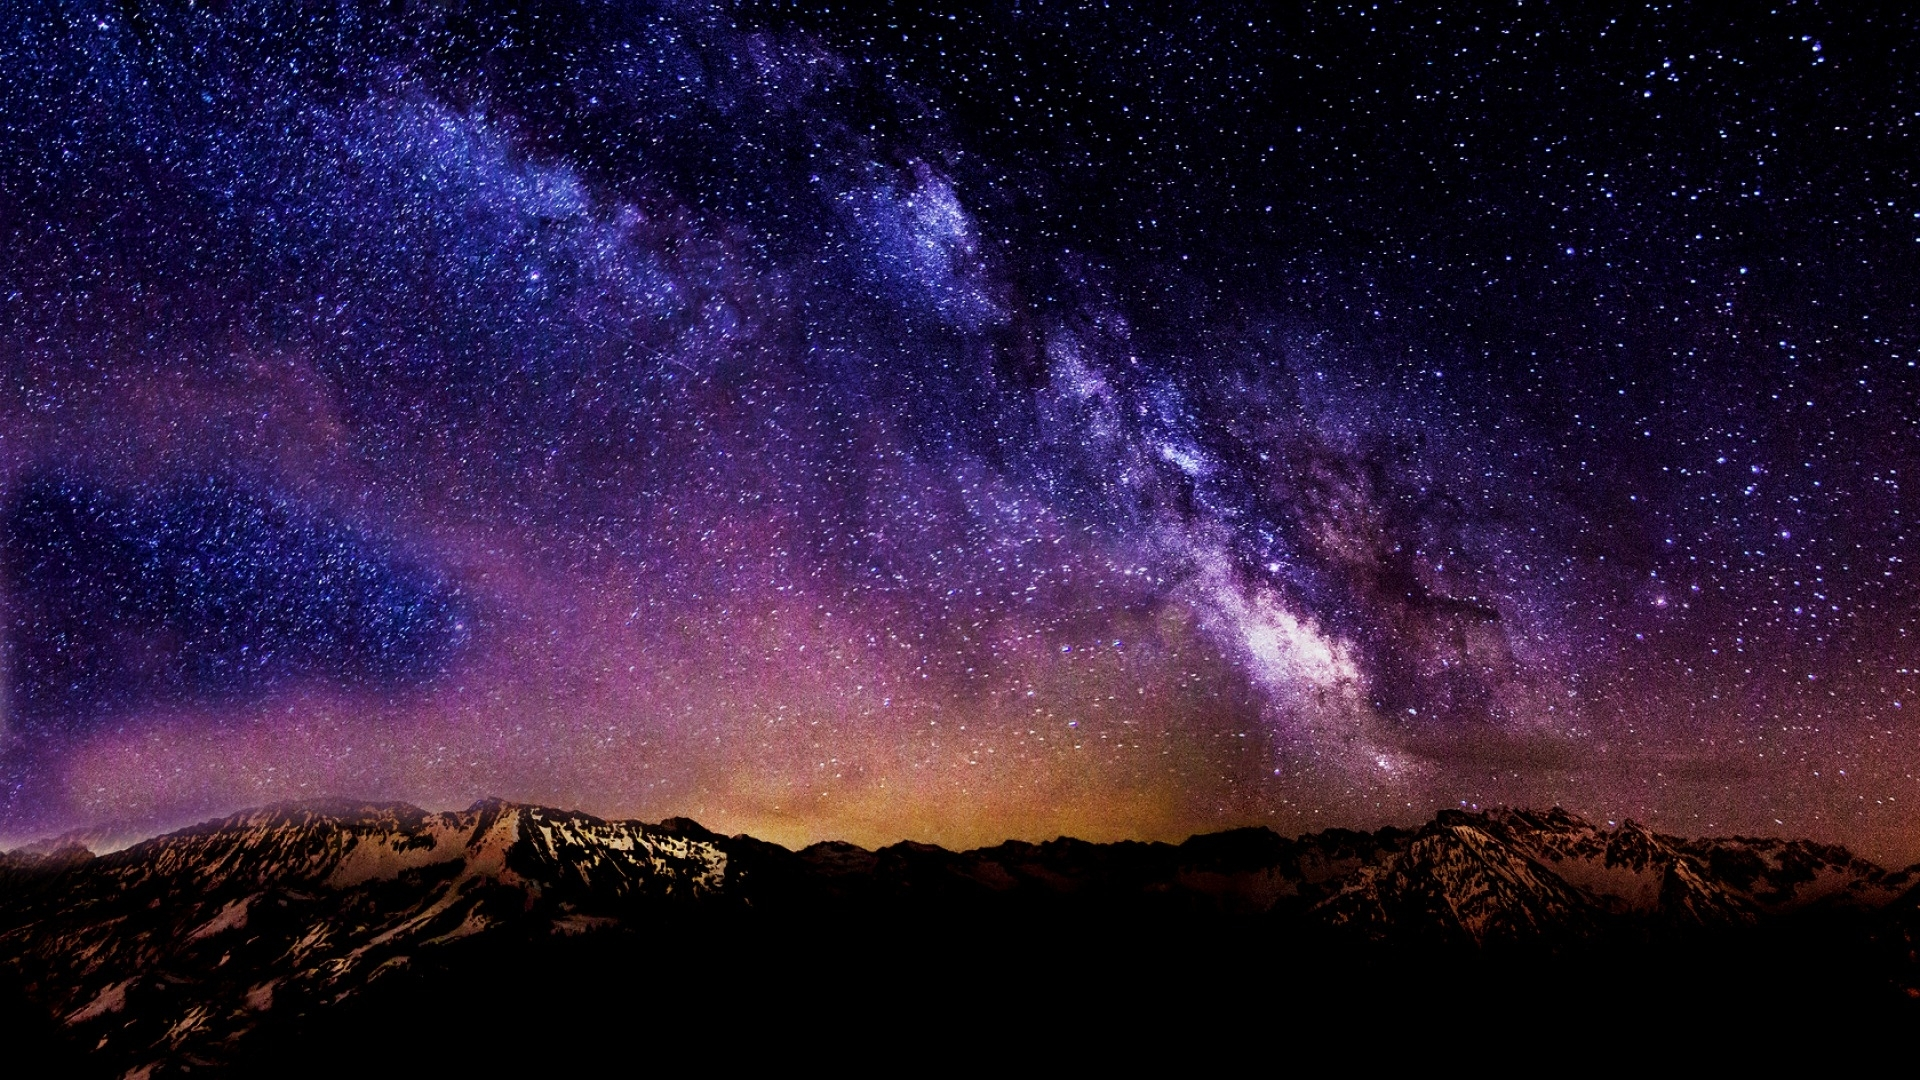 starry starry night hd desktop background - media file | pixelstalk